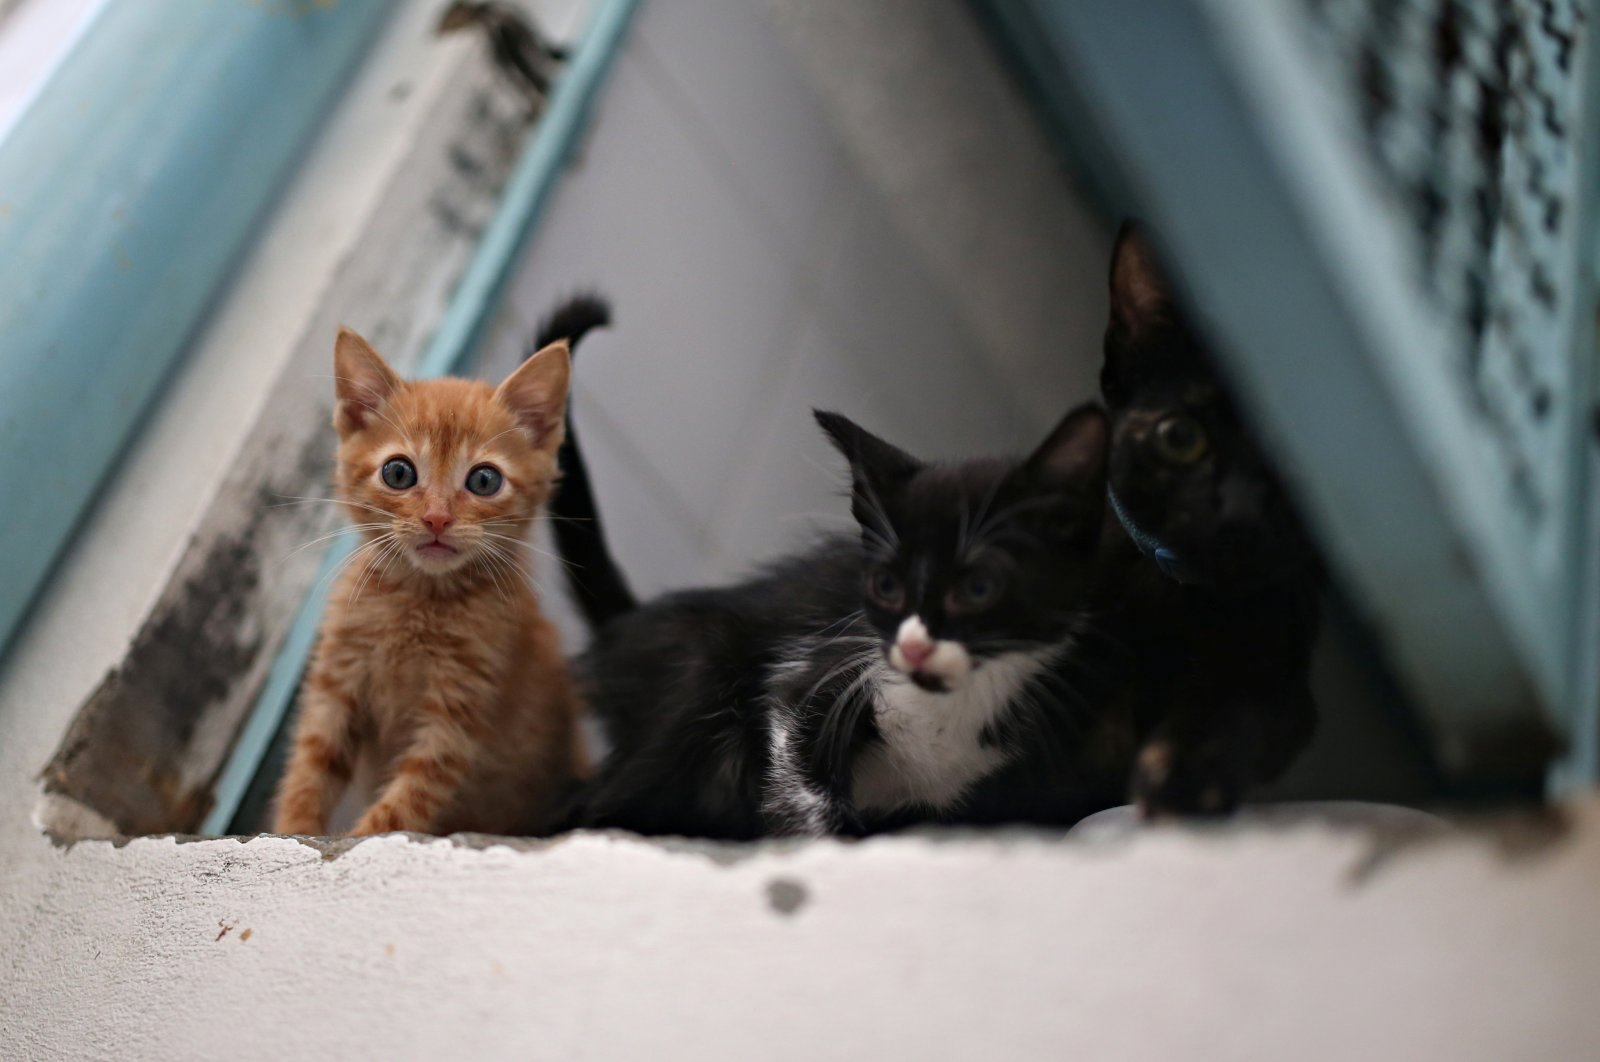 Cats that are under the care and protection of the Mayor's Animal Care Unit office are seen inside a cage at their facilities amid the coronavirus outbreak in Bogota, Colombia, April 2, 2020. (Reuters Photo)